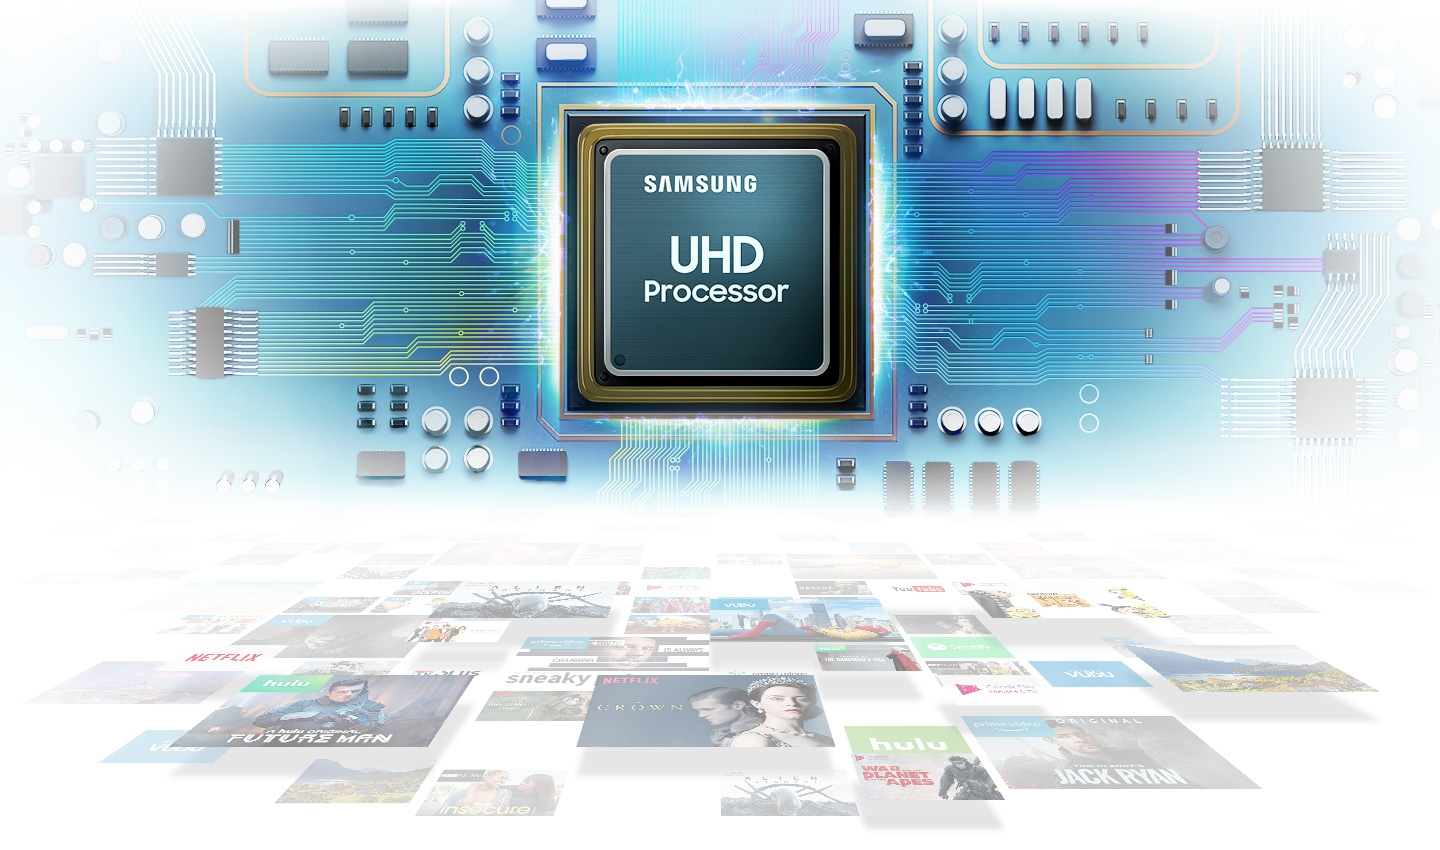 Телевизор SAMSUNG UE65RU7472 (2019г) 4K UHD 3840 x 2160, SMART TV, PQI (Picture Quality Index) 2000, HDR 10+, DVB-T2CS2 - фото UHD Processor,powerful picture quality